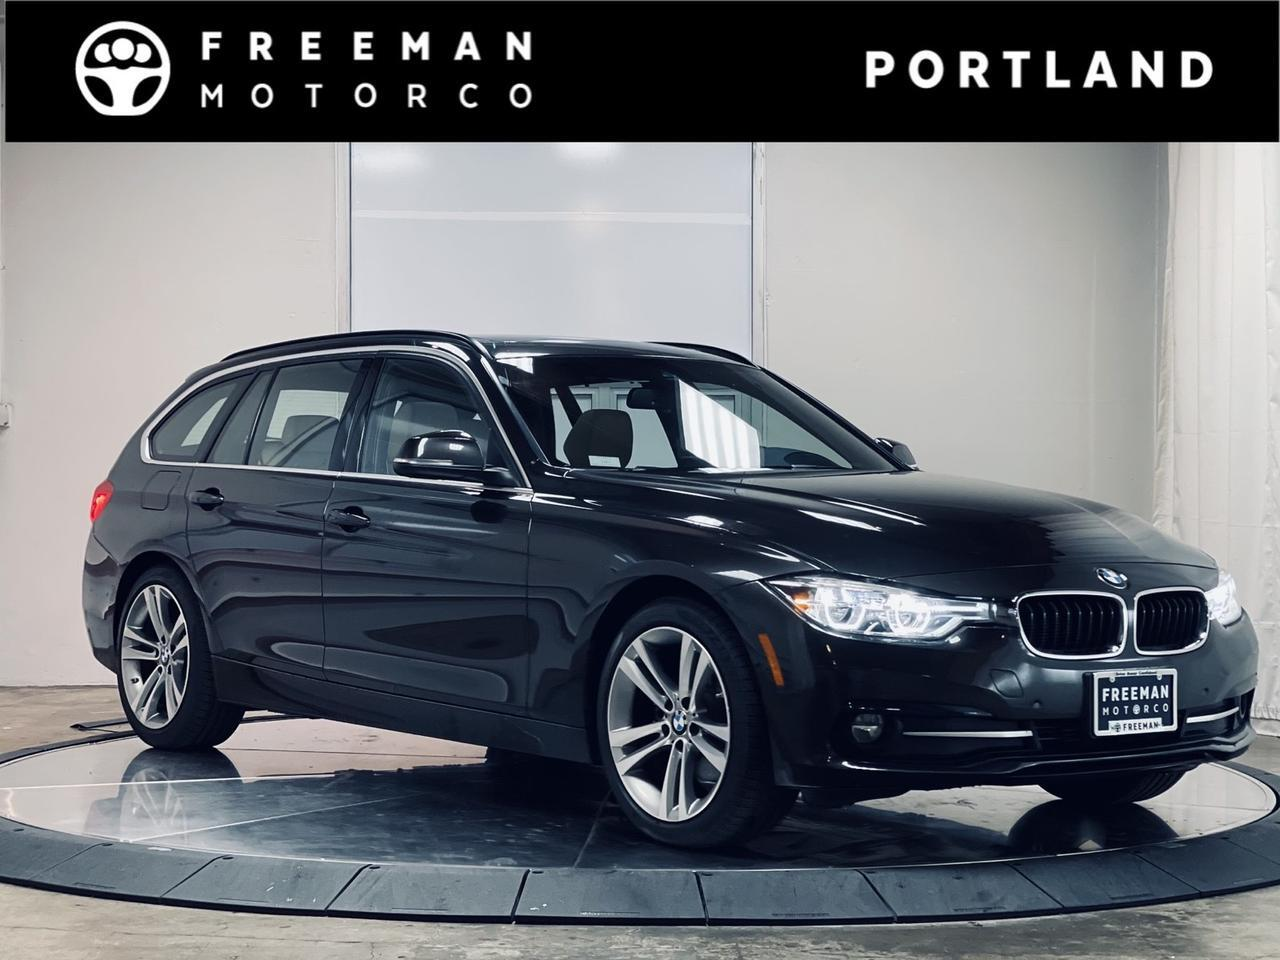 2017 BMW 328d xDrive Heads Up Display Blind Spot Detection Heated Steering Wheel Portland OR